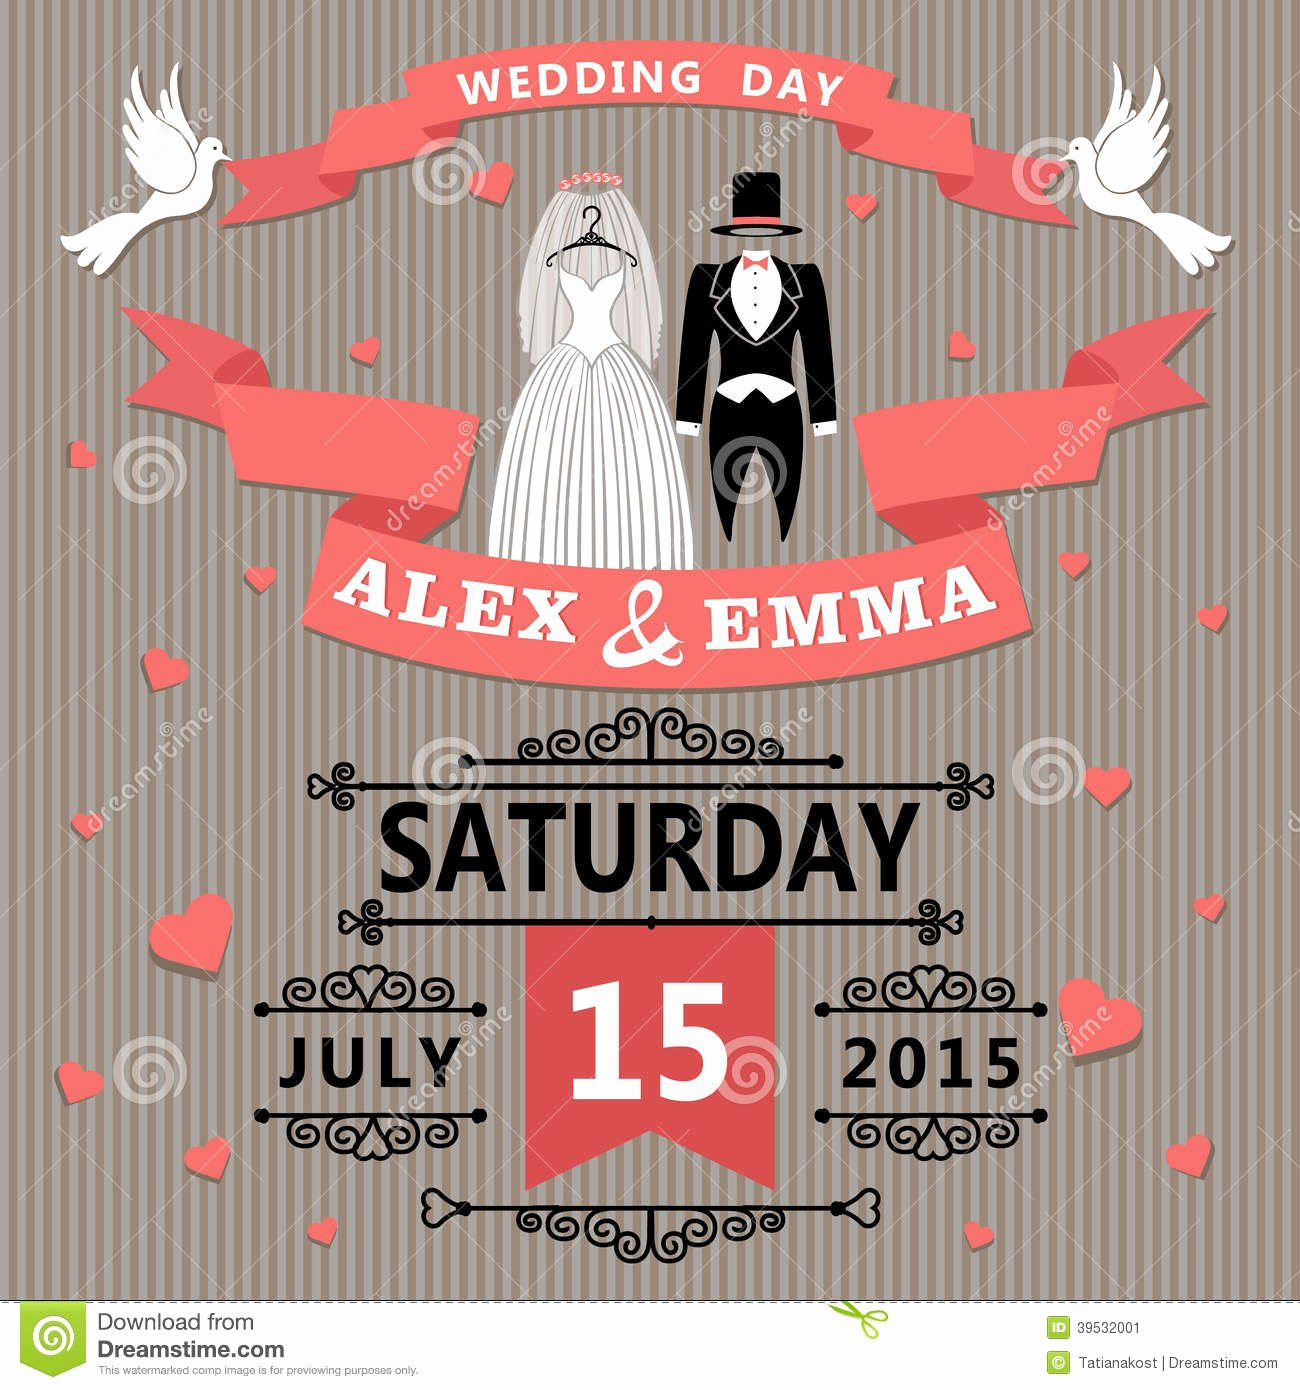 Wedding Dress Invitation Template Lovely Wedding Invitation with Cartoon Dress Bride and Stock